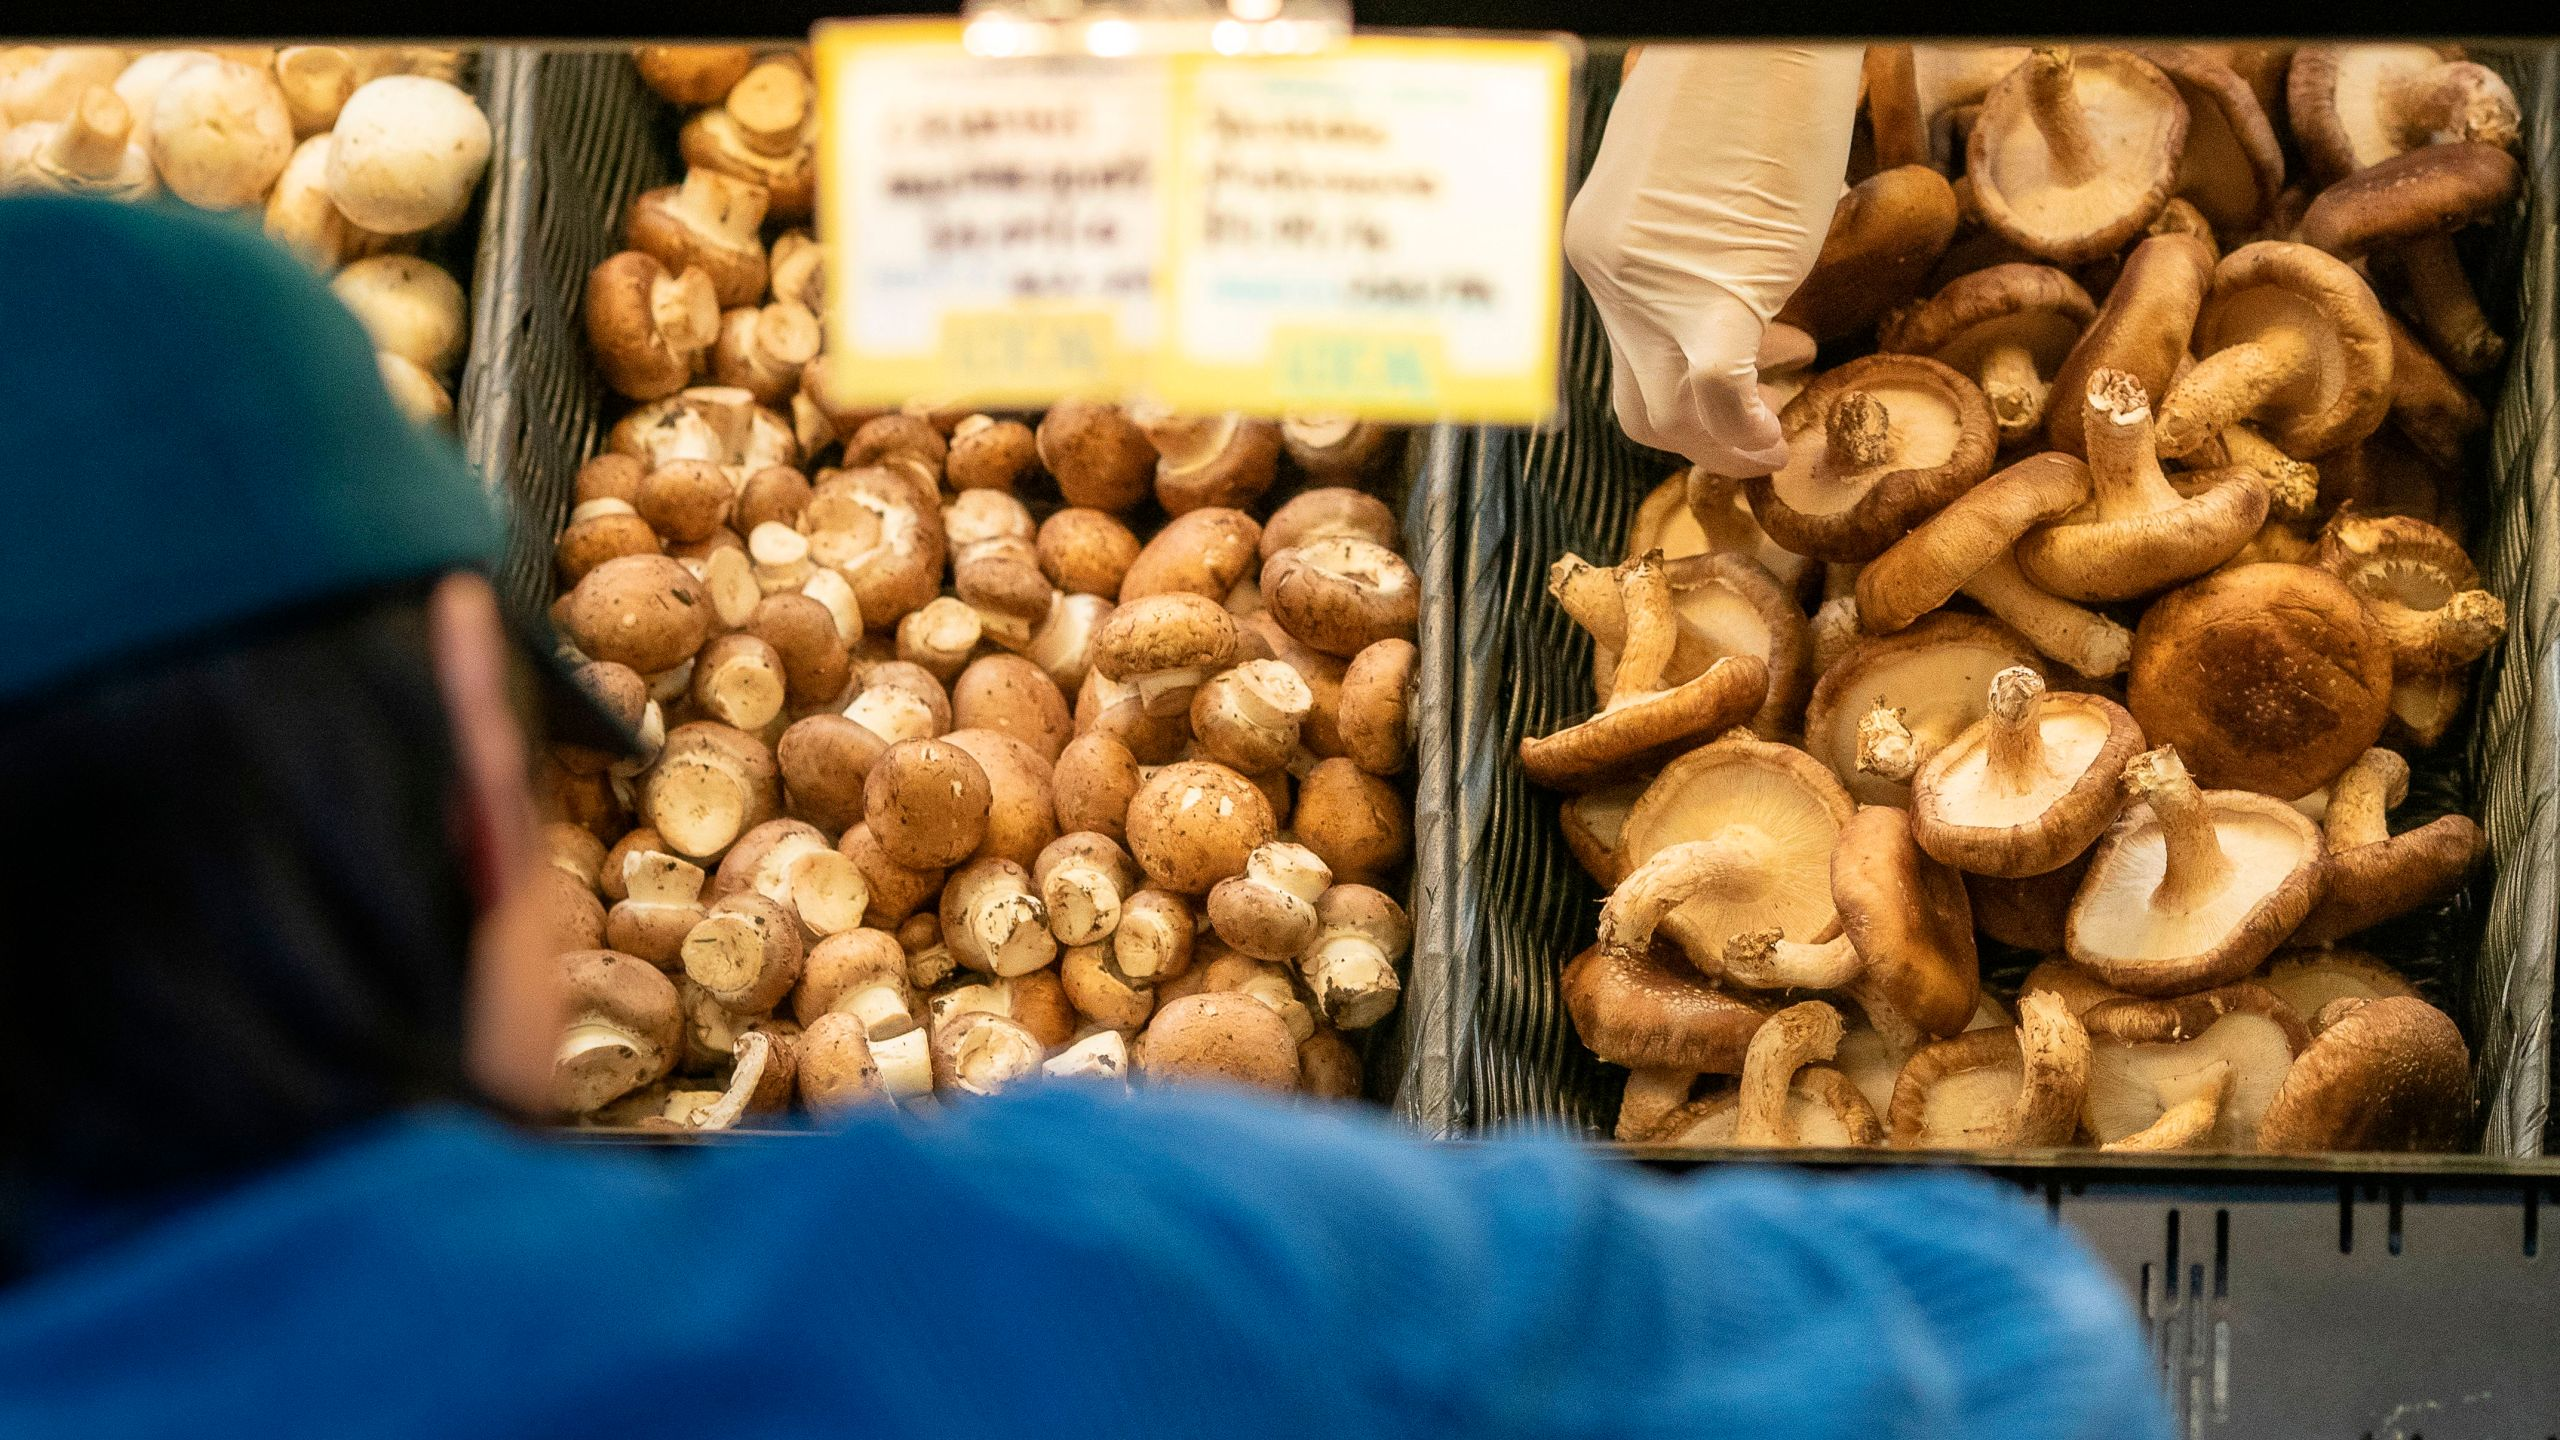 A customer wearing rubber gloves shops for mushrooms at a MOM's Organic Market on April 2, 2020, in Washington, DC. (ALEX EDELMAN/AFP via Getty Images)